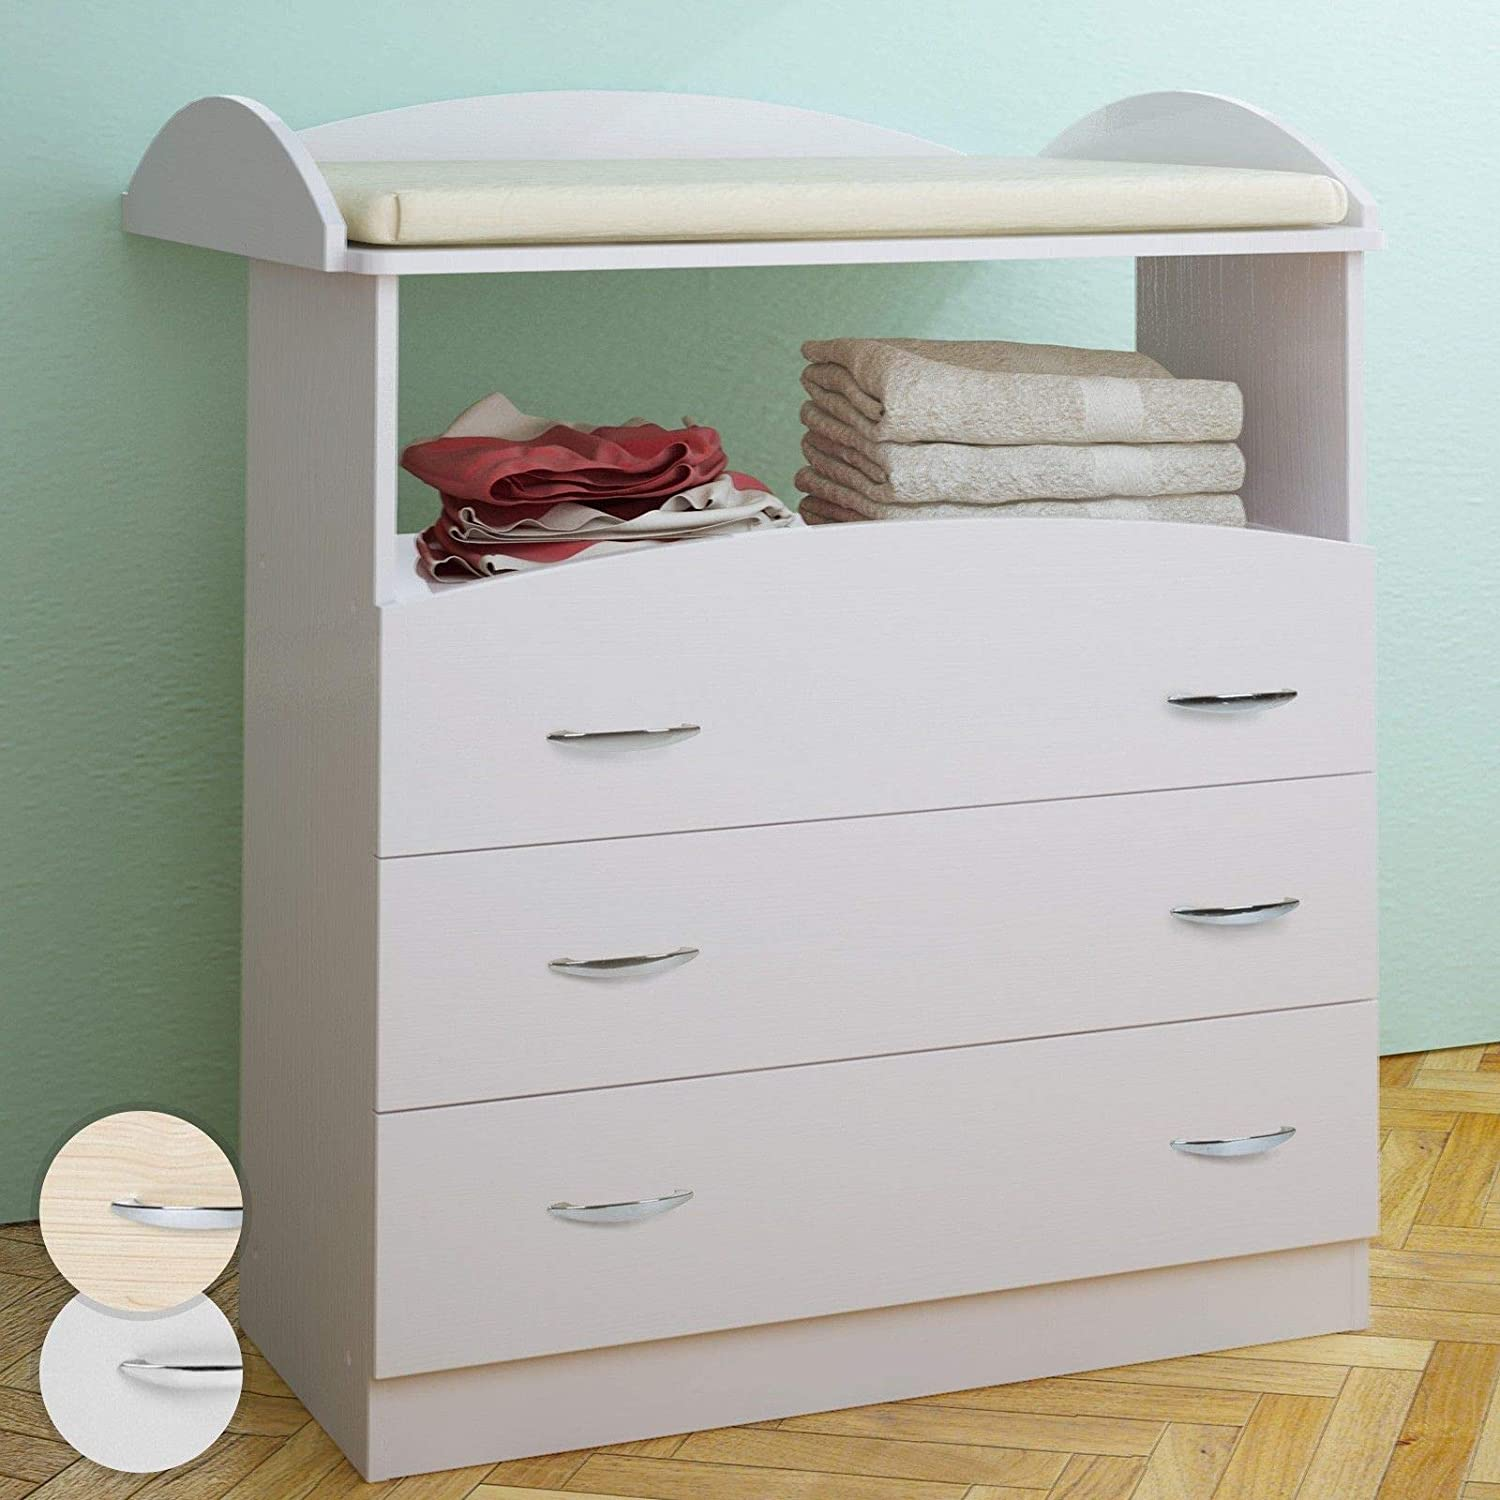 Baby Changing Table Unit 3 Drawers Chest Storage Nursery Furniture 85 x 71 x 96 cm (Beech) FF Europe